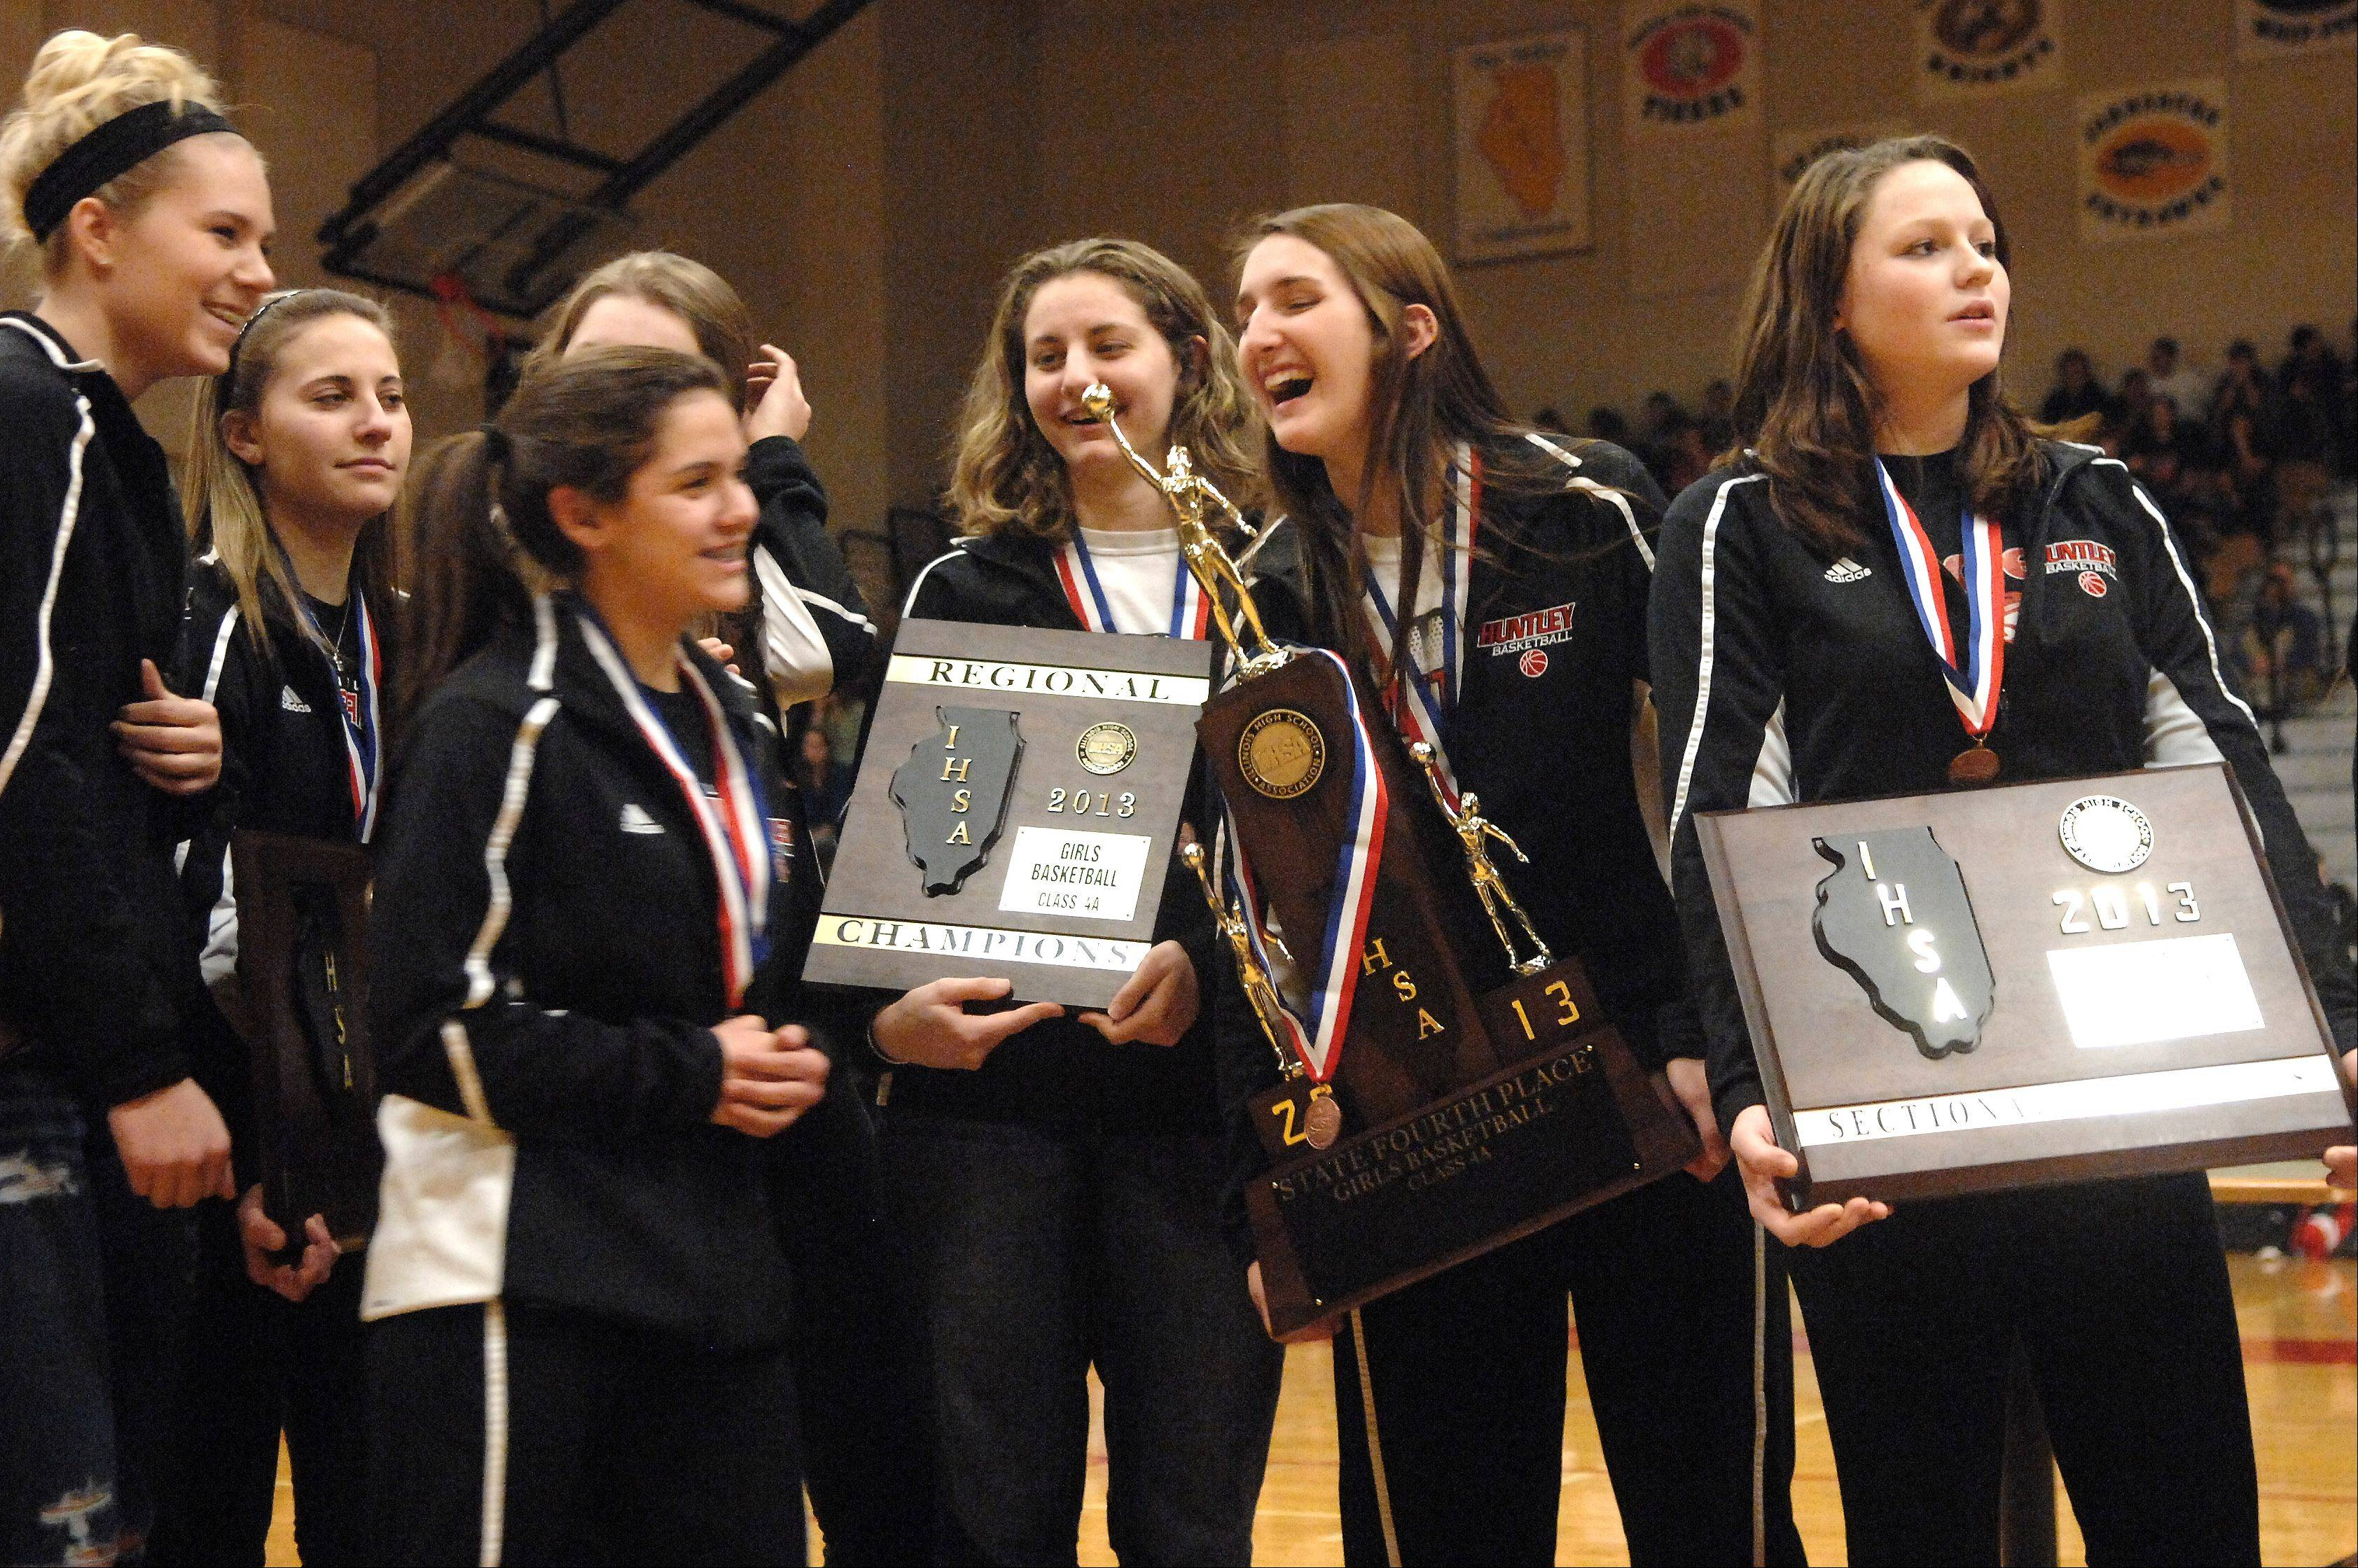 Huntley High School basketball players show off their hardware during a pep assembly Monday. The Red Raiders finished fourth in the state basketball tournament last weekend.